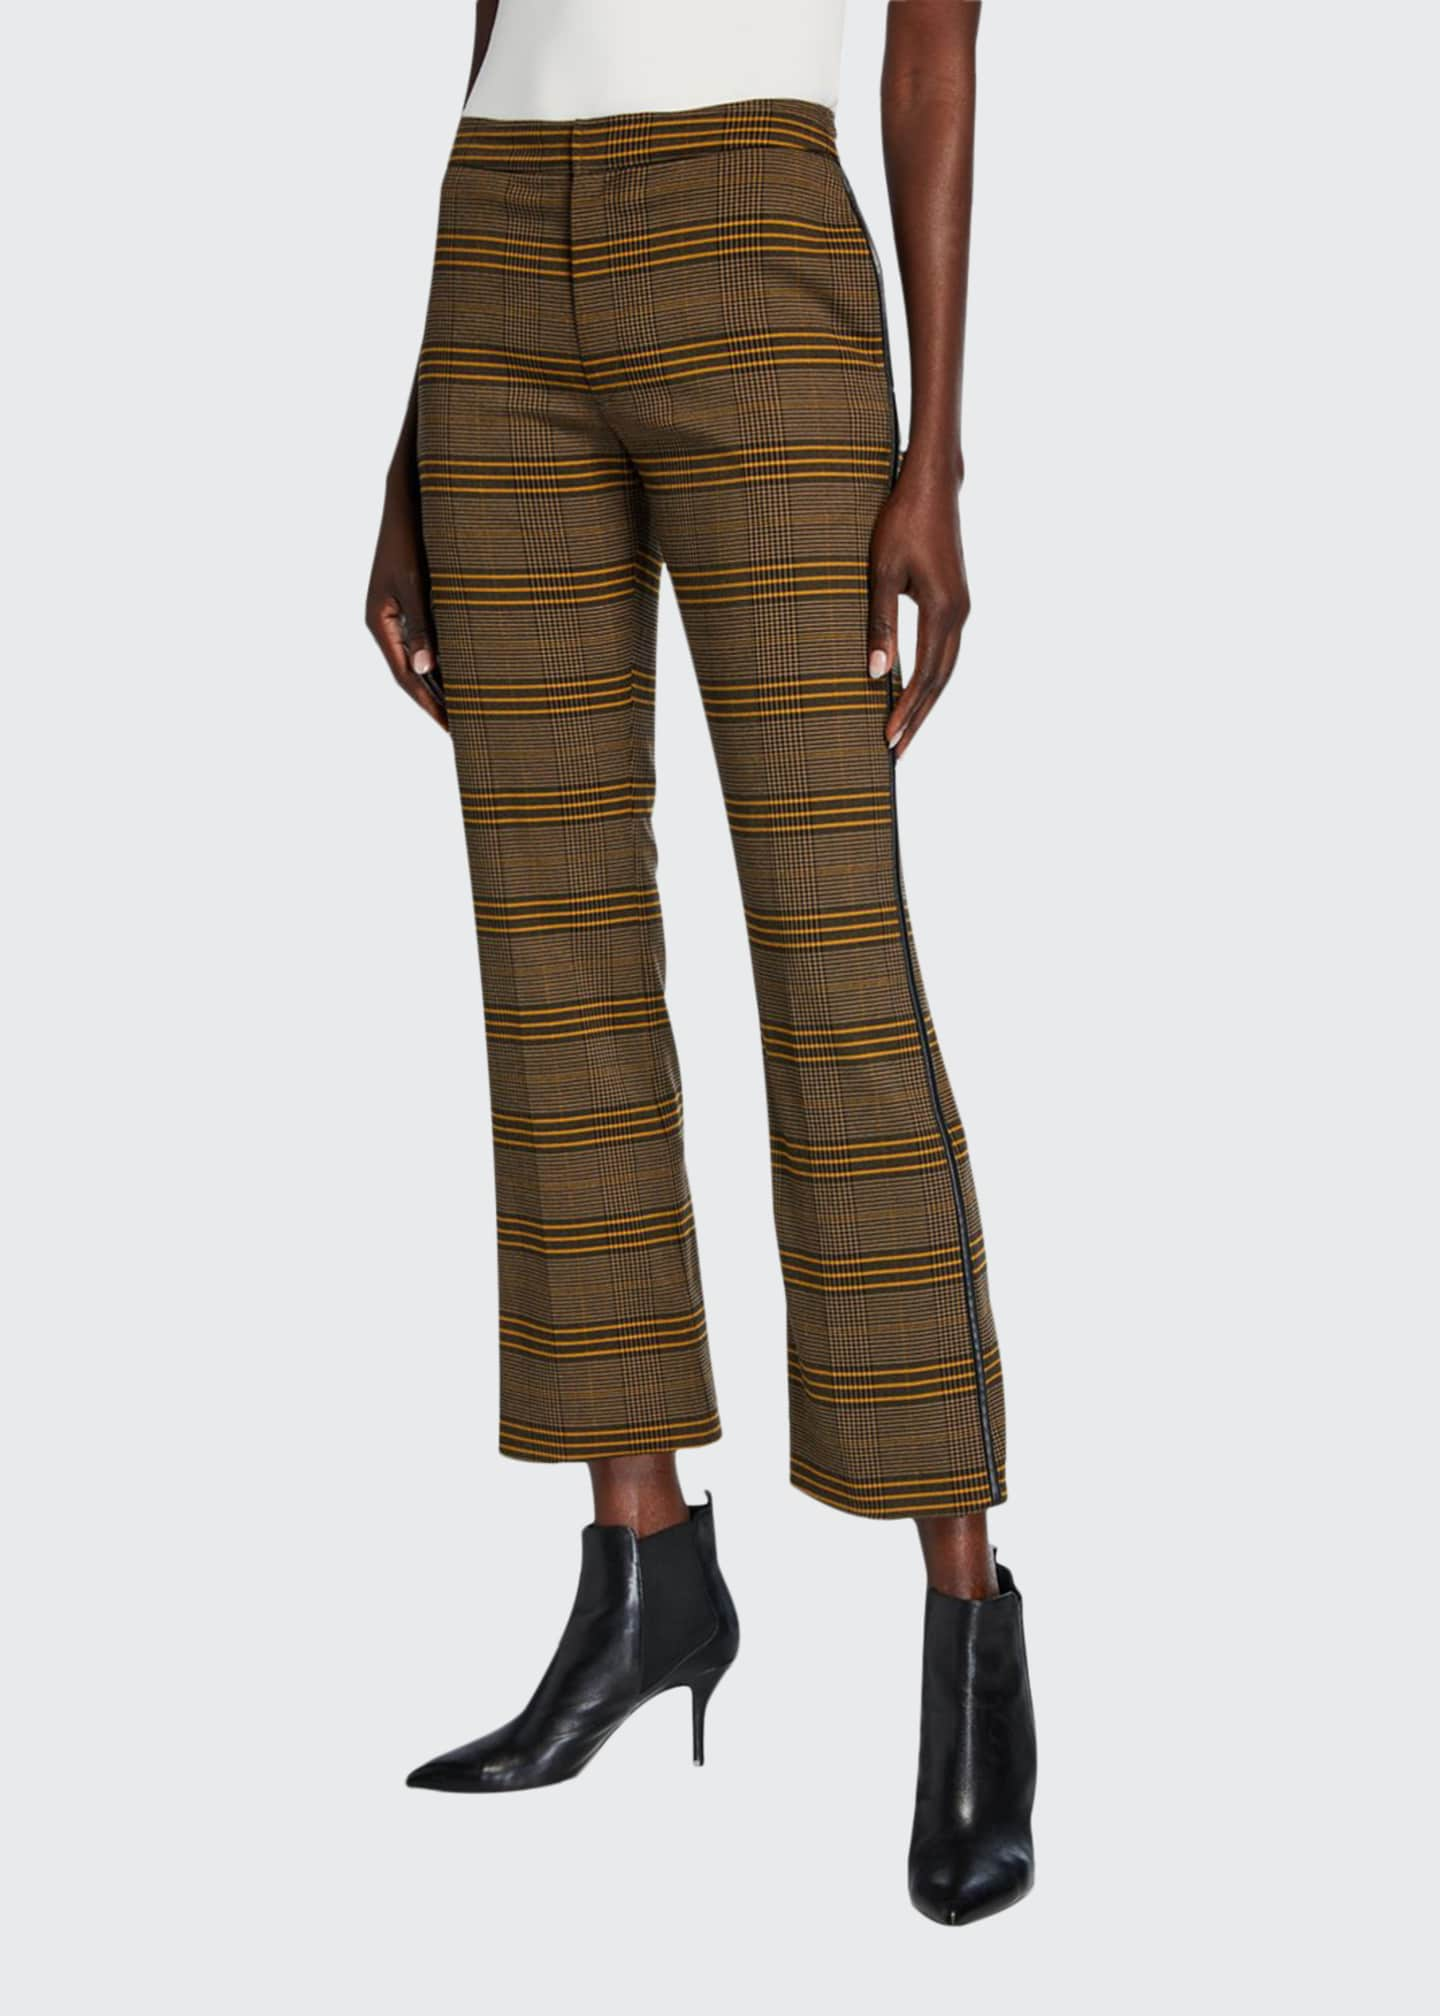 ADEAM Plaid Cropped Cigarette Pants